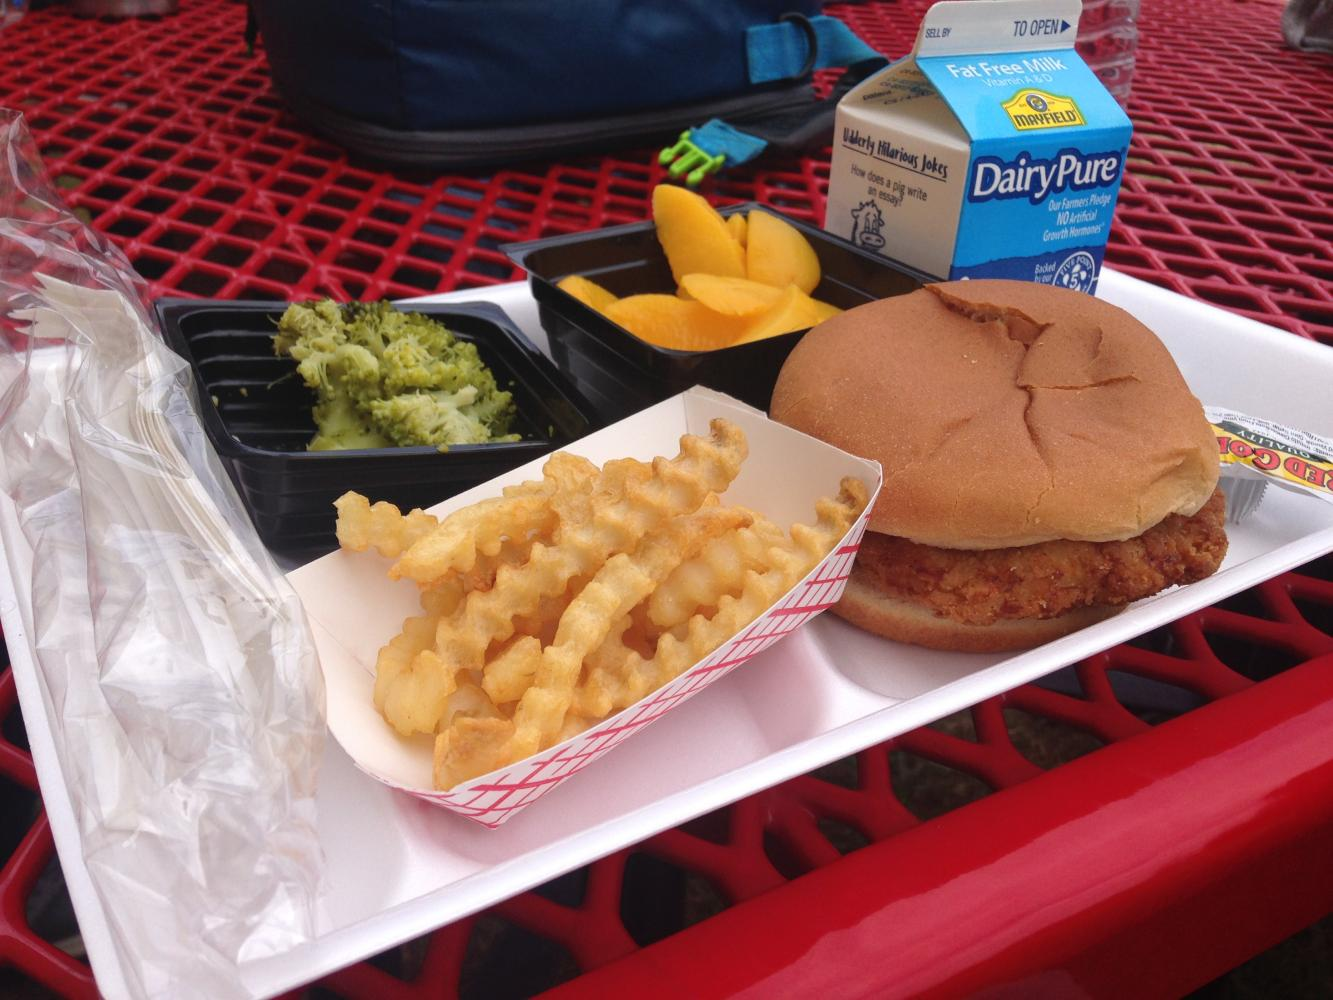 A typical meal available at Lambert on top of a polystyrene tray used by the school.